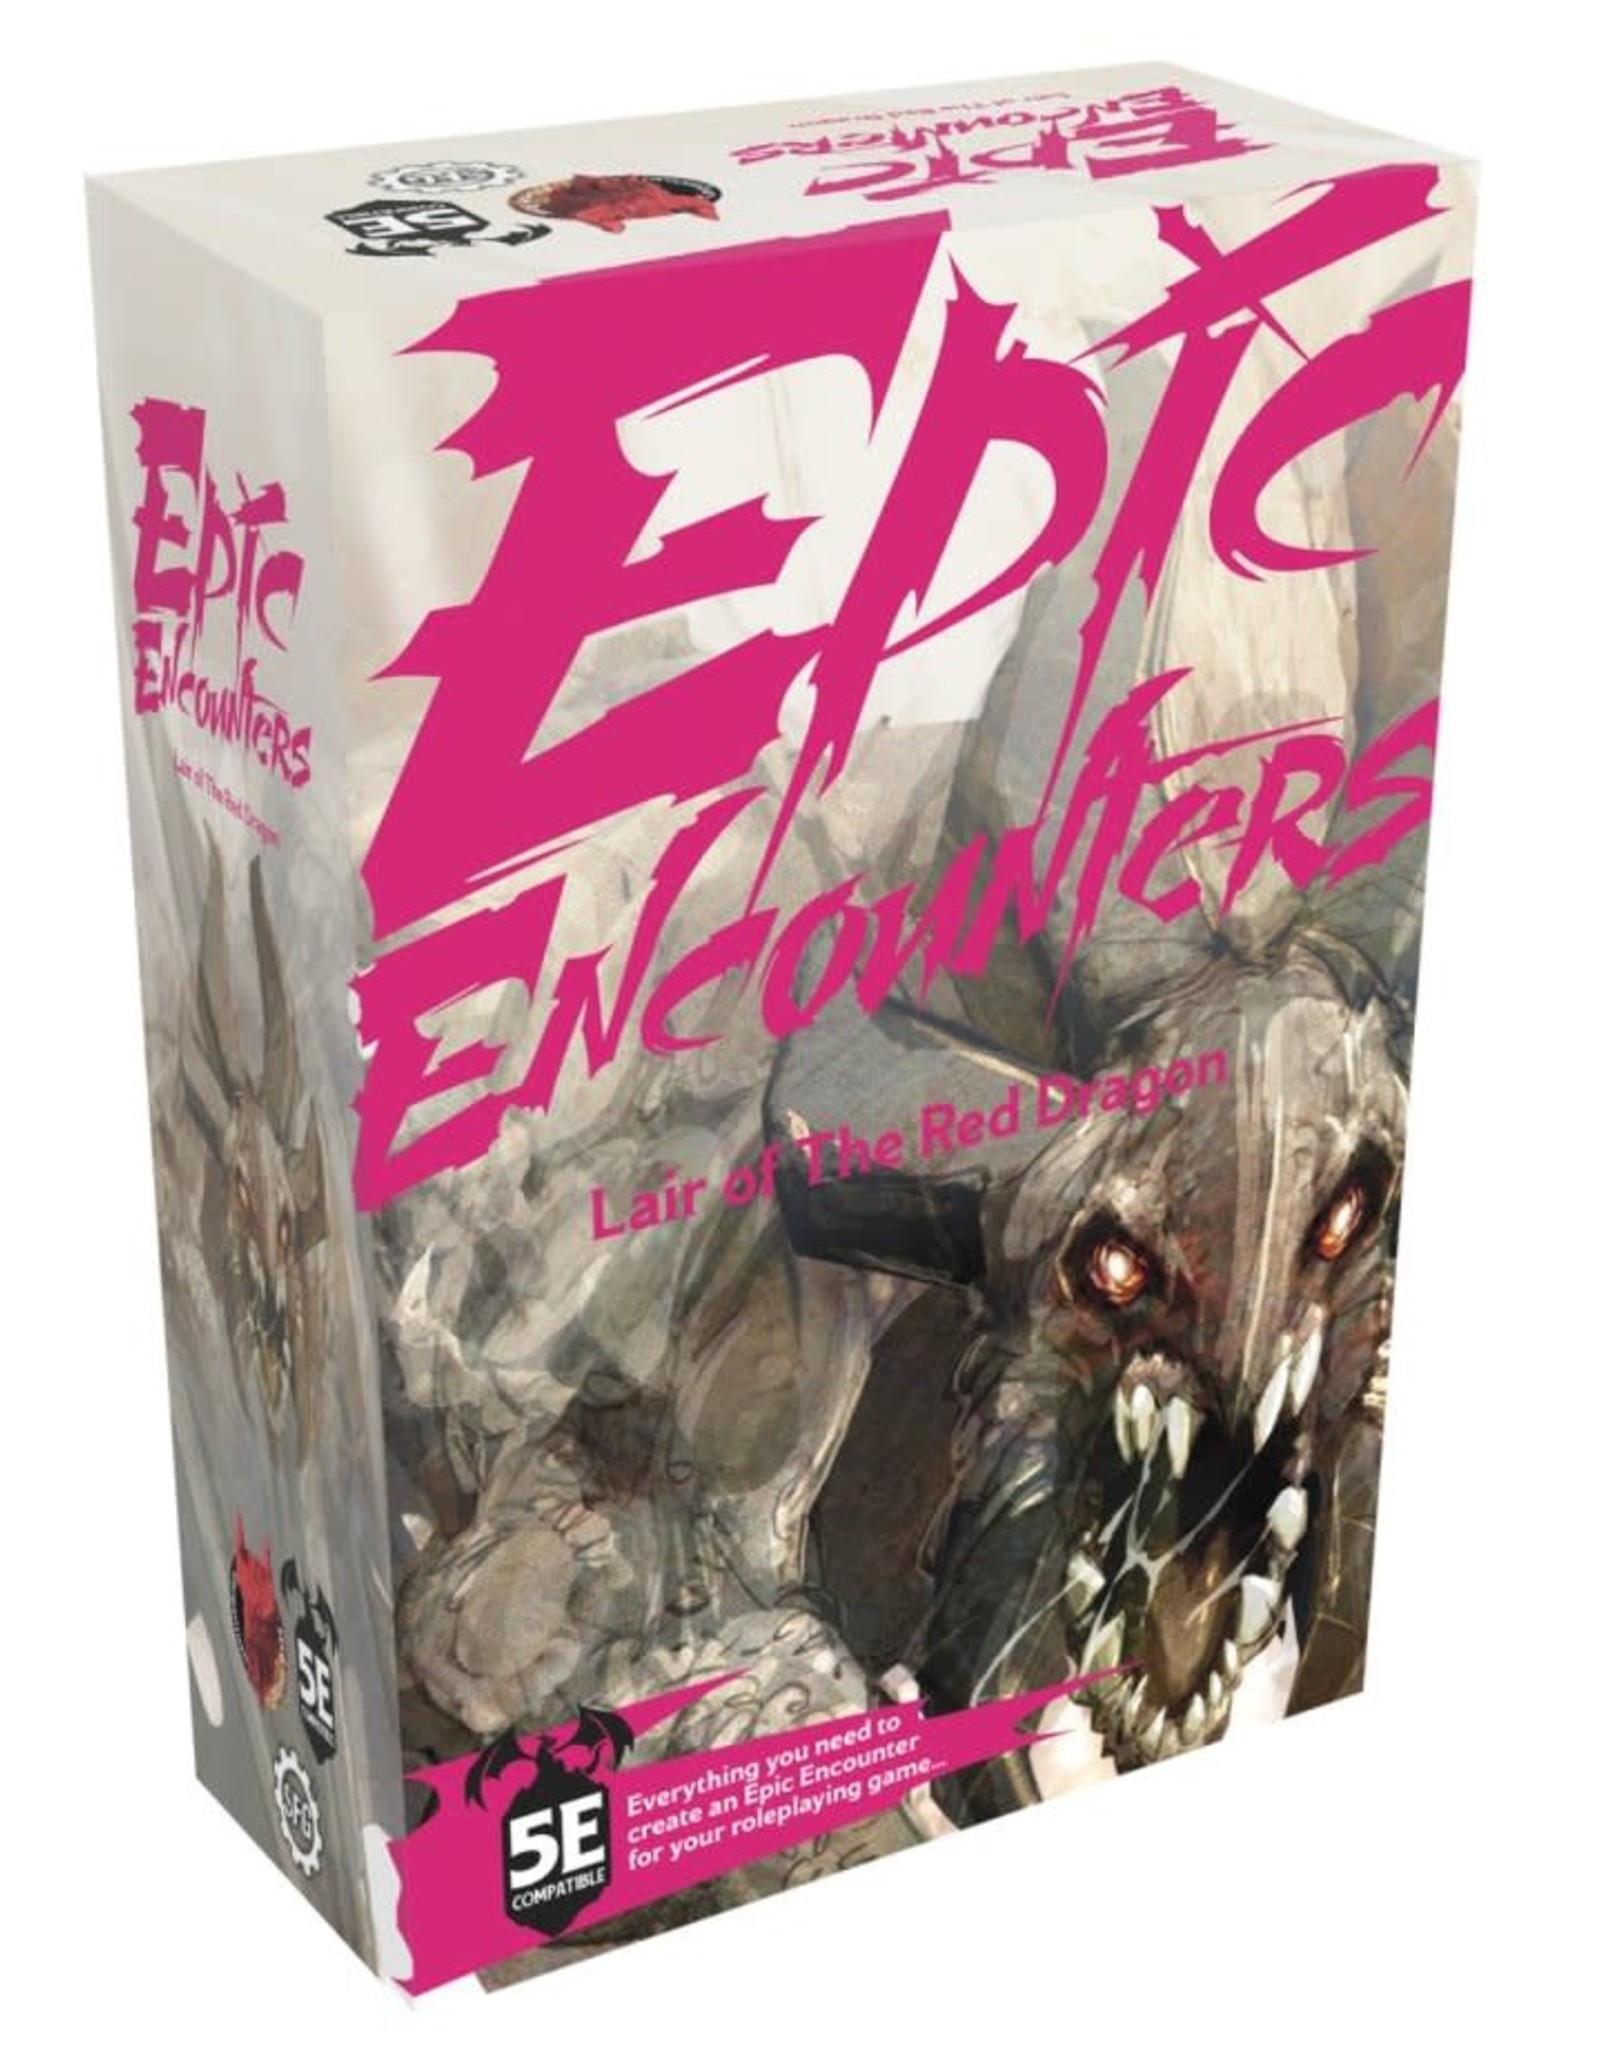 Epic Encounters Epic Encounters - Lair of the Red Dragon